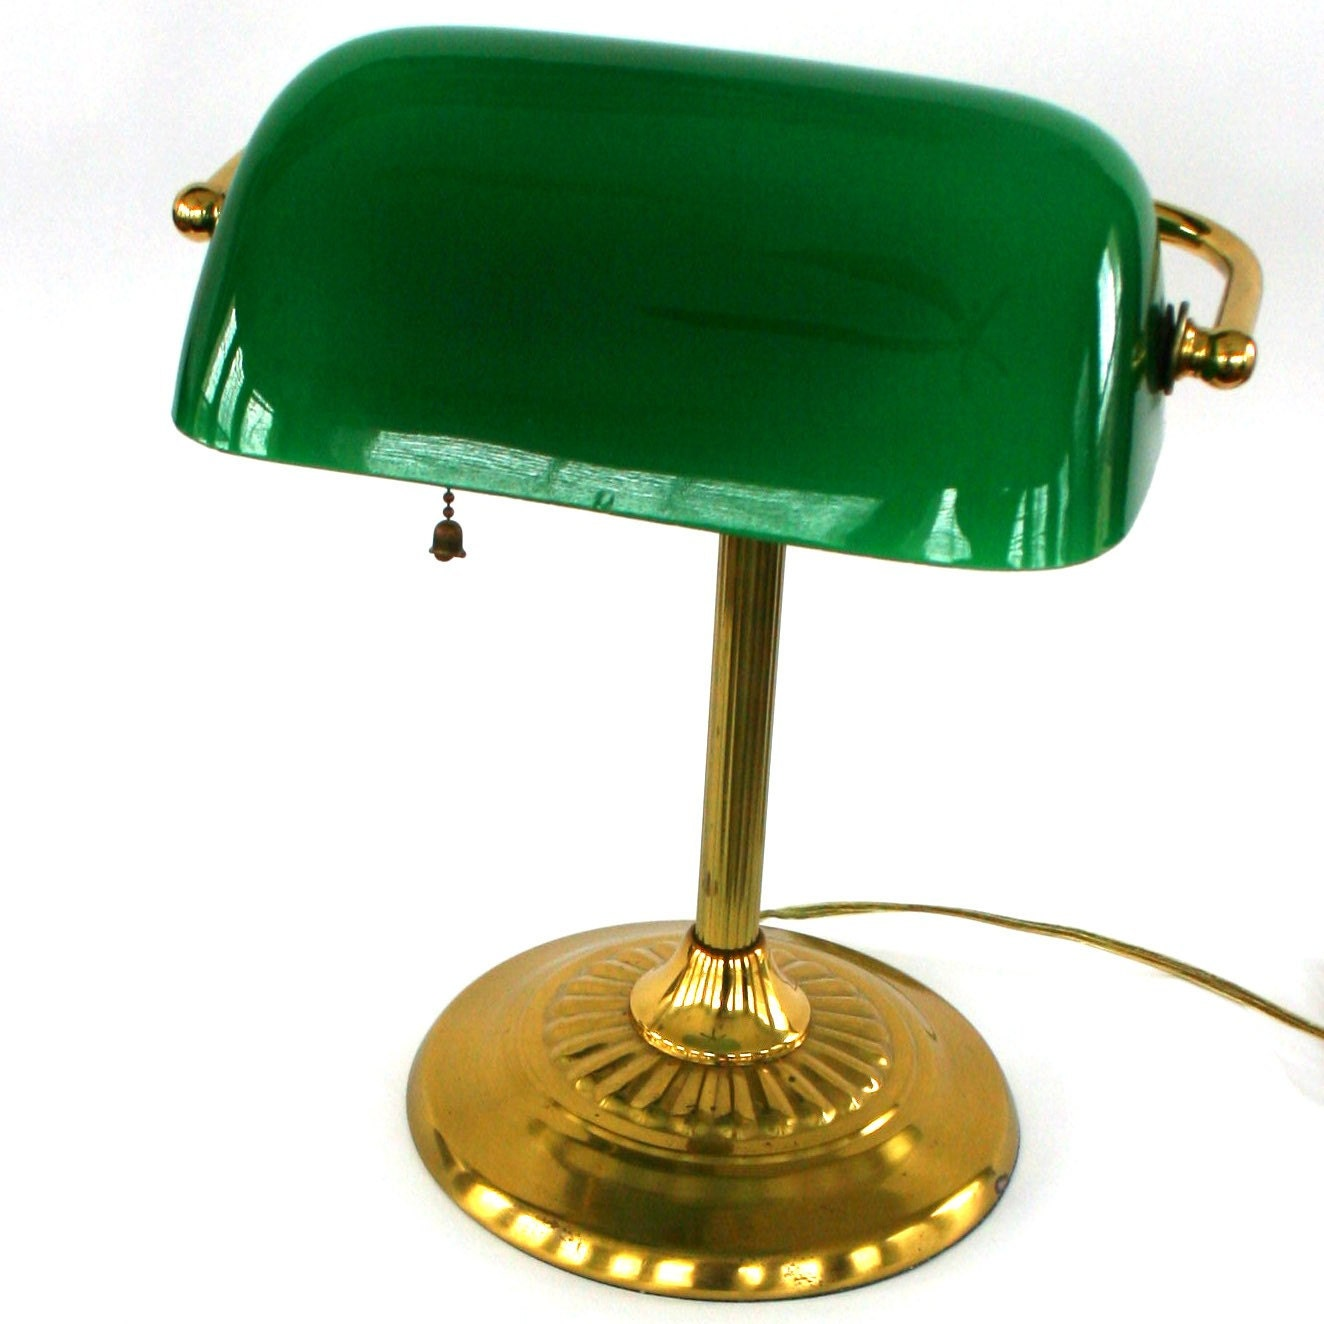 Vintage Bankers Lamp Brass Glass Kelly Green by